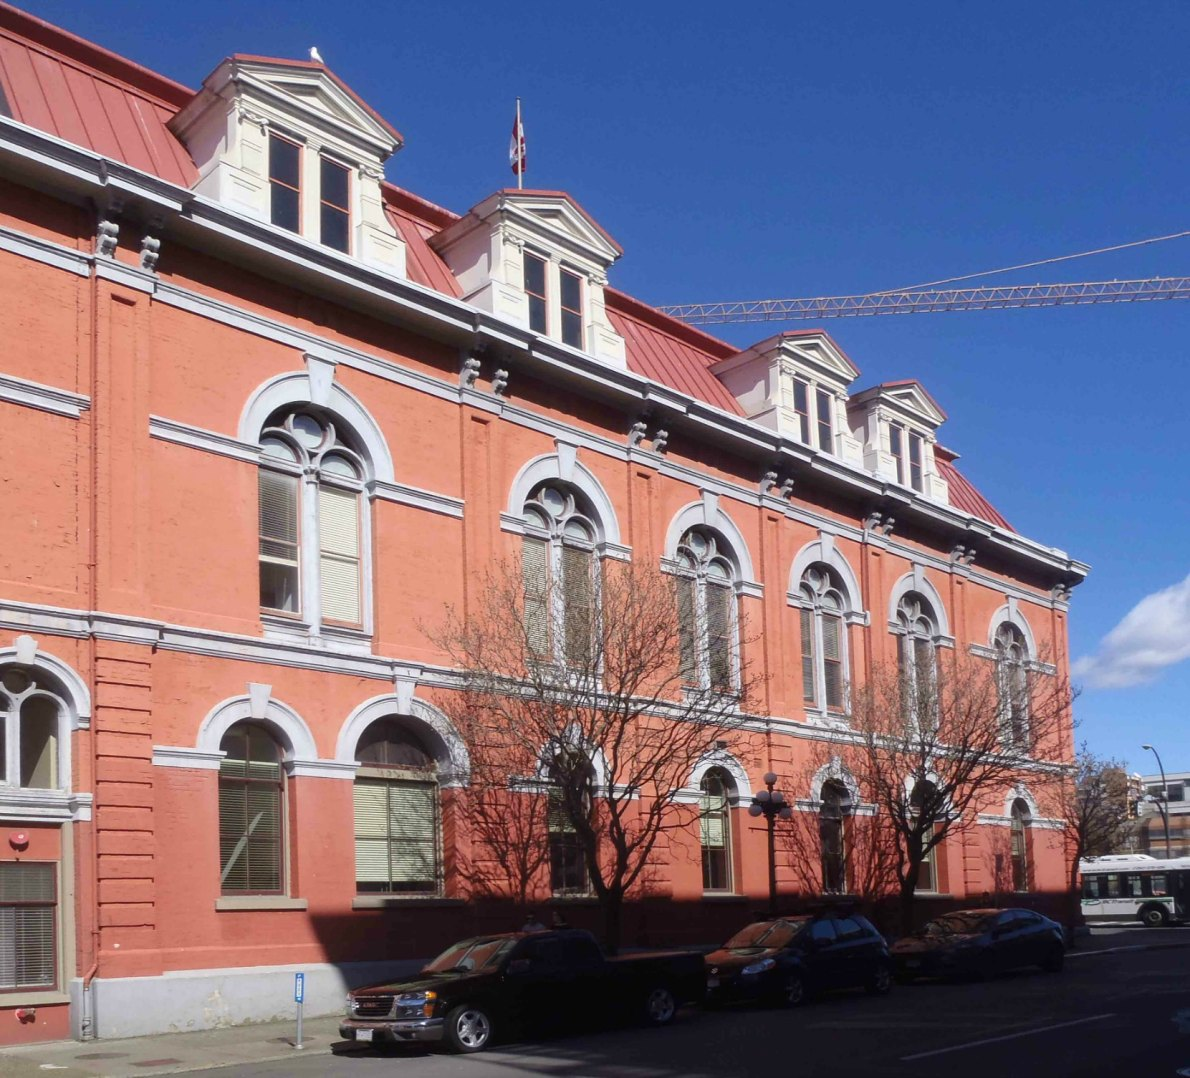 The original 1878 section of Victoria City Hall as it appears today (photo by Victoria Online Sightseeing Tours)